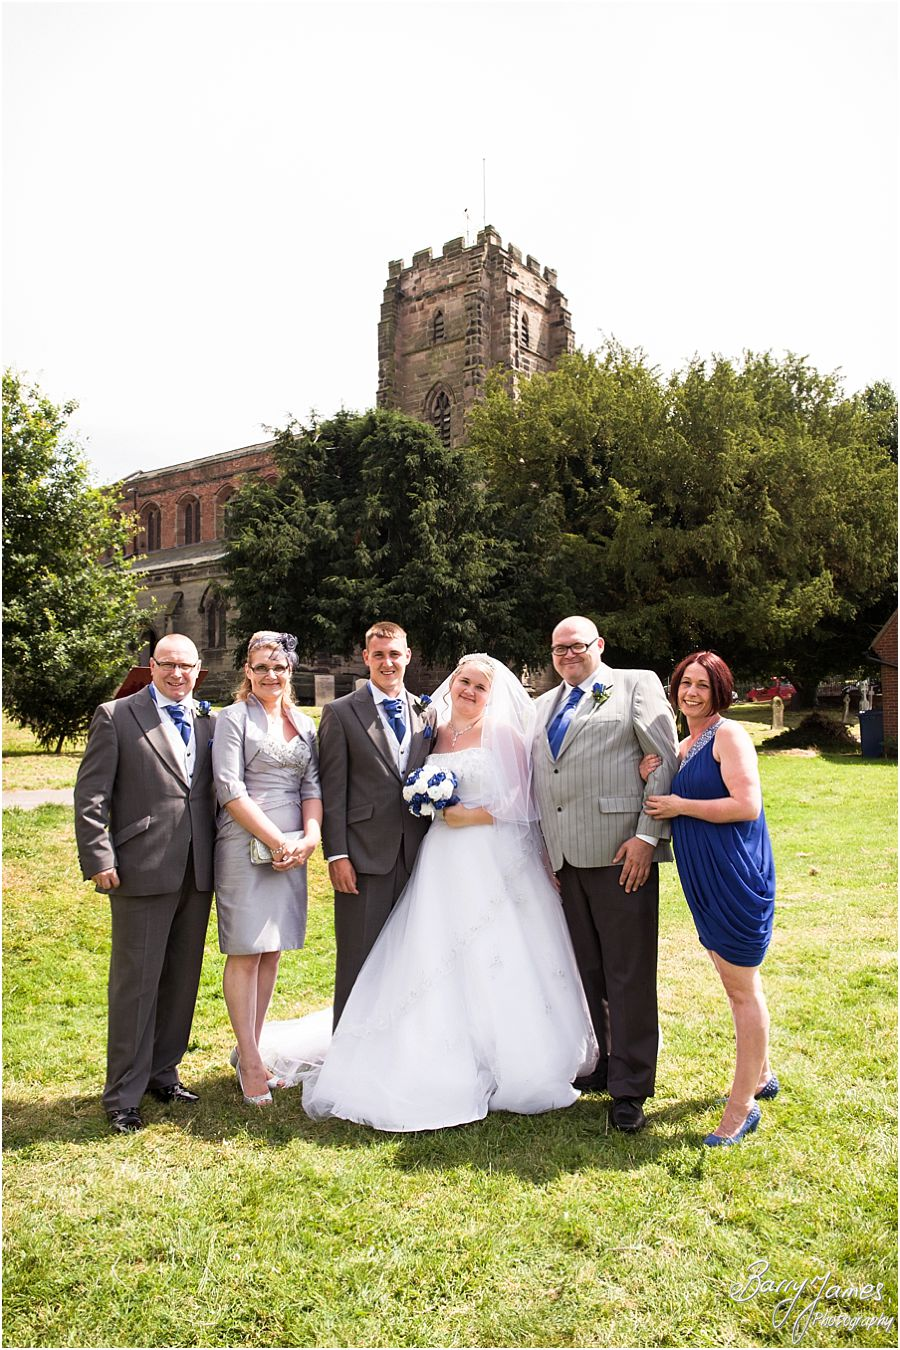 Gorgeous wedding photographs at St Chads Church in Lichfield by Lichfield Wedding Photographer Barry James